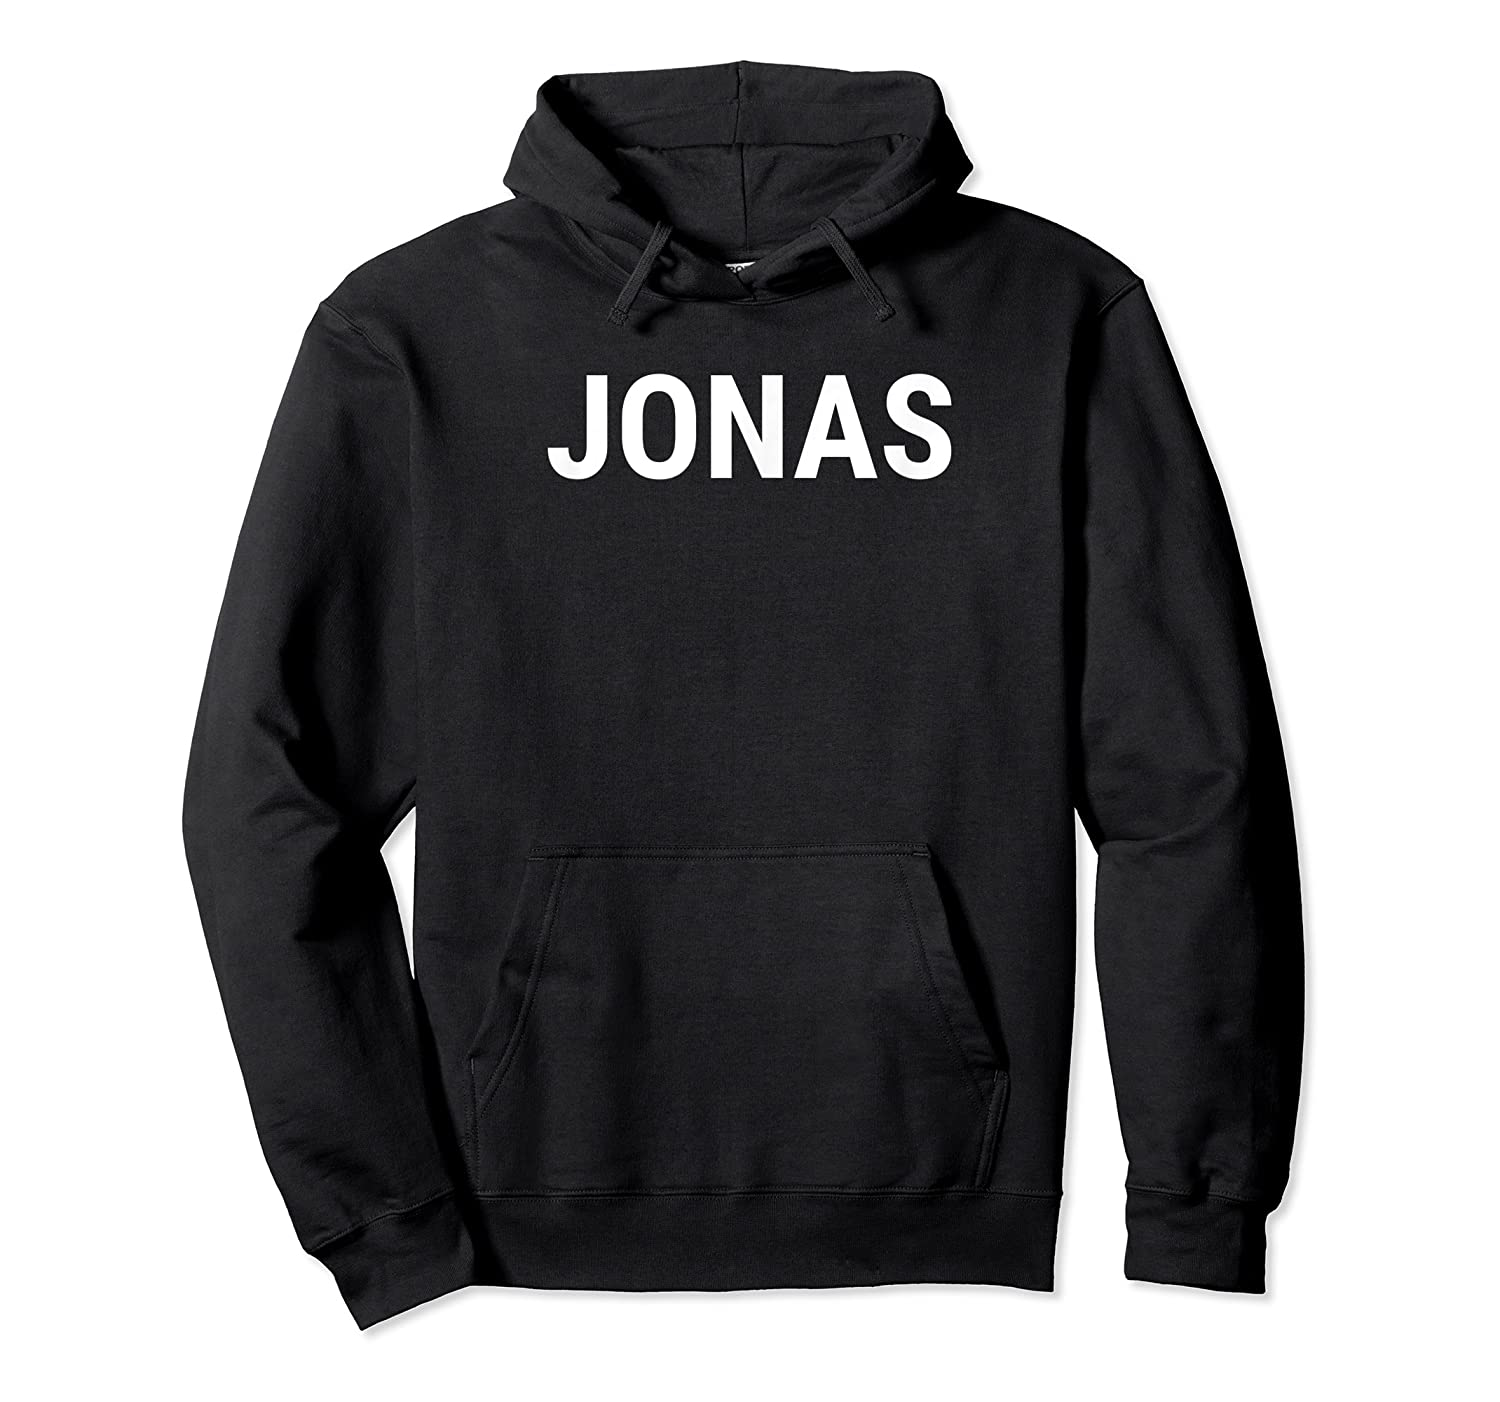 Jonas First Given Name Pride T Shirt Unisex Pullover Hoodie